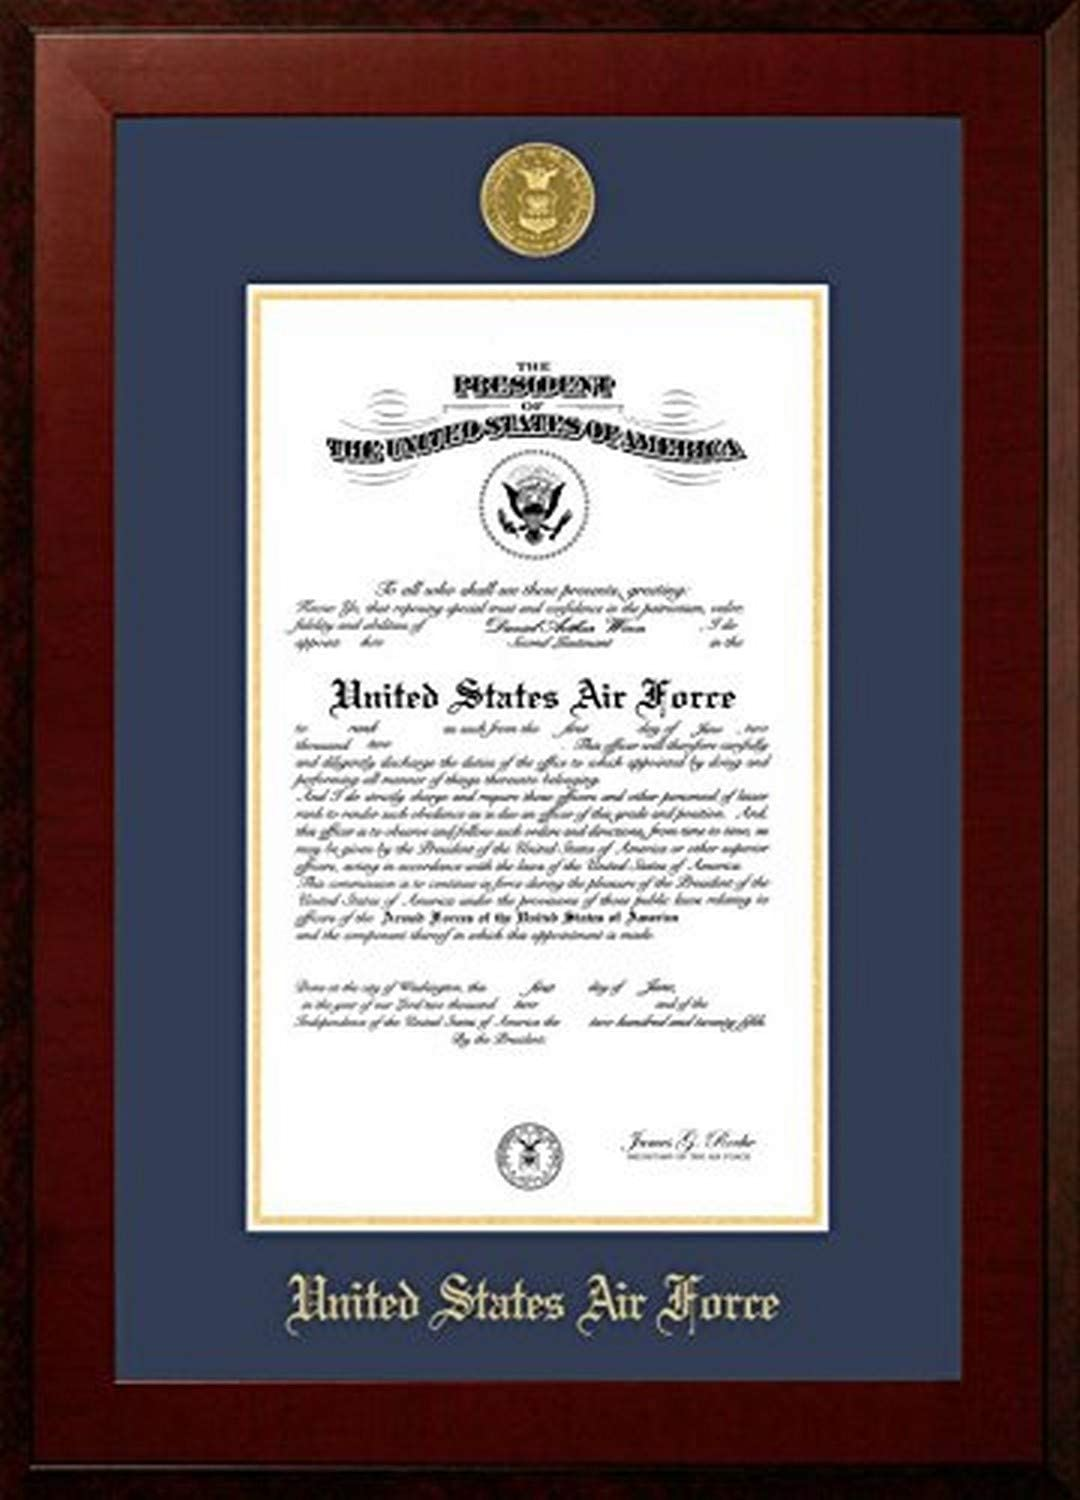 Campus Images AFCHO0018.5x11 Air Honors Certificate Force Limited price Frame Super intense SALE